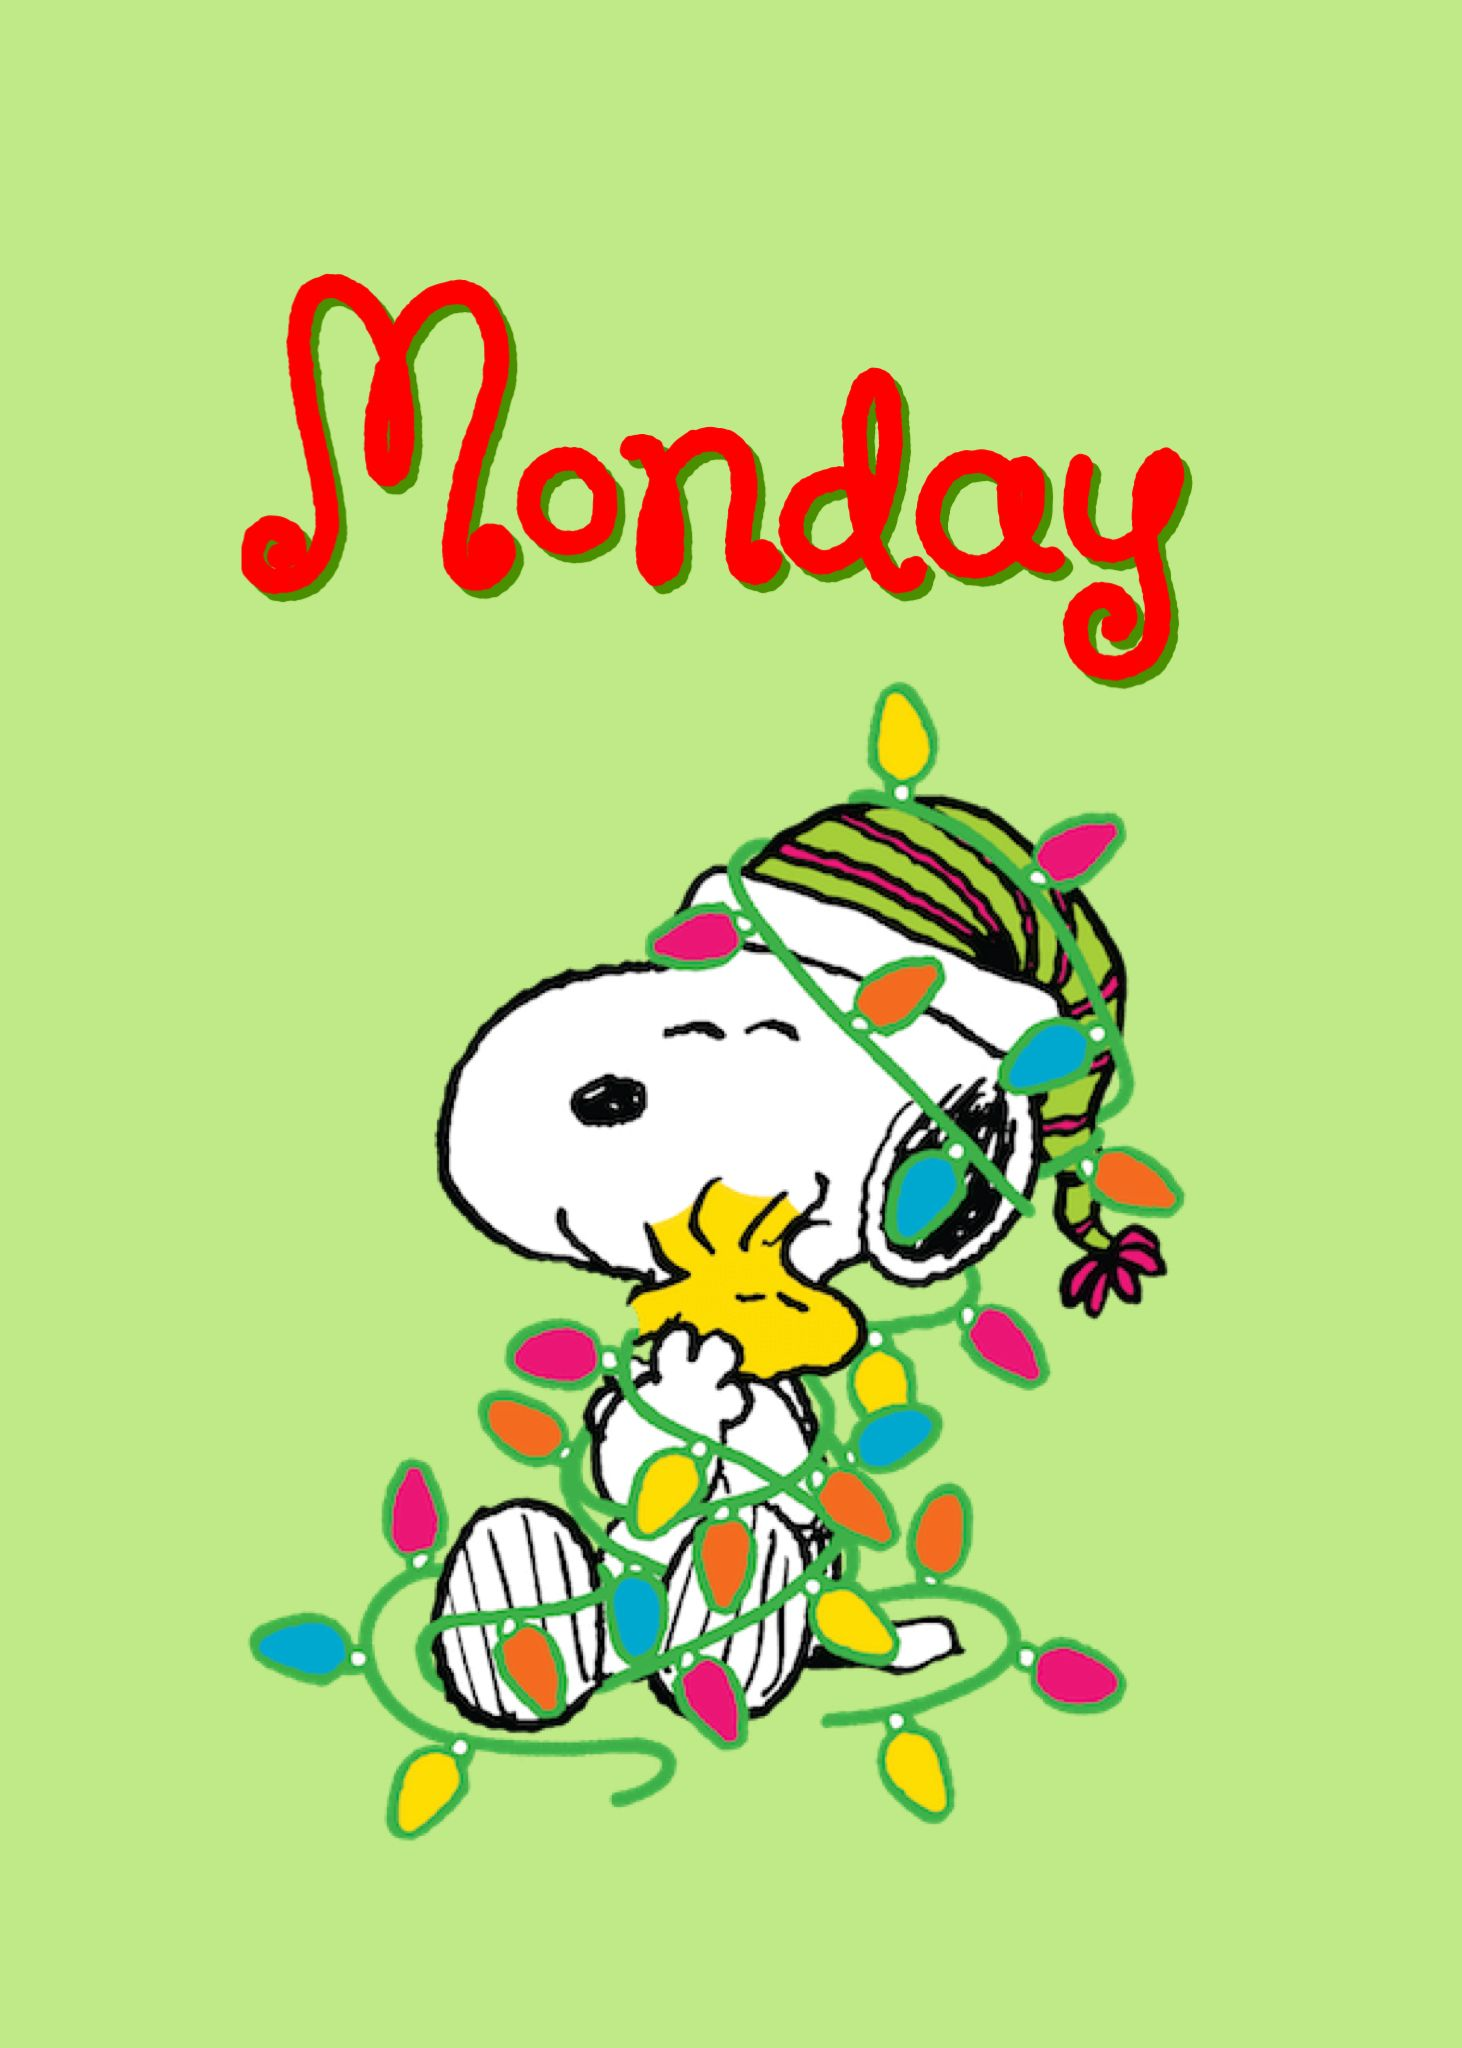 Happy Monday | Snoopy | Pinterest | Snoopy, Snoopy christmas and ...